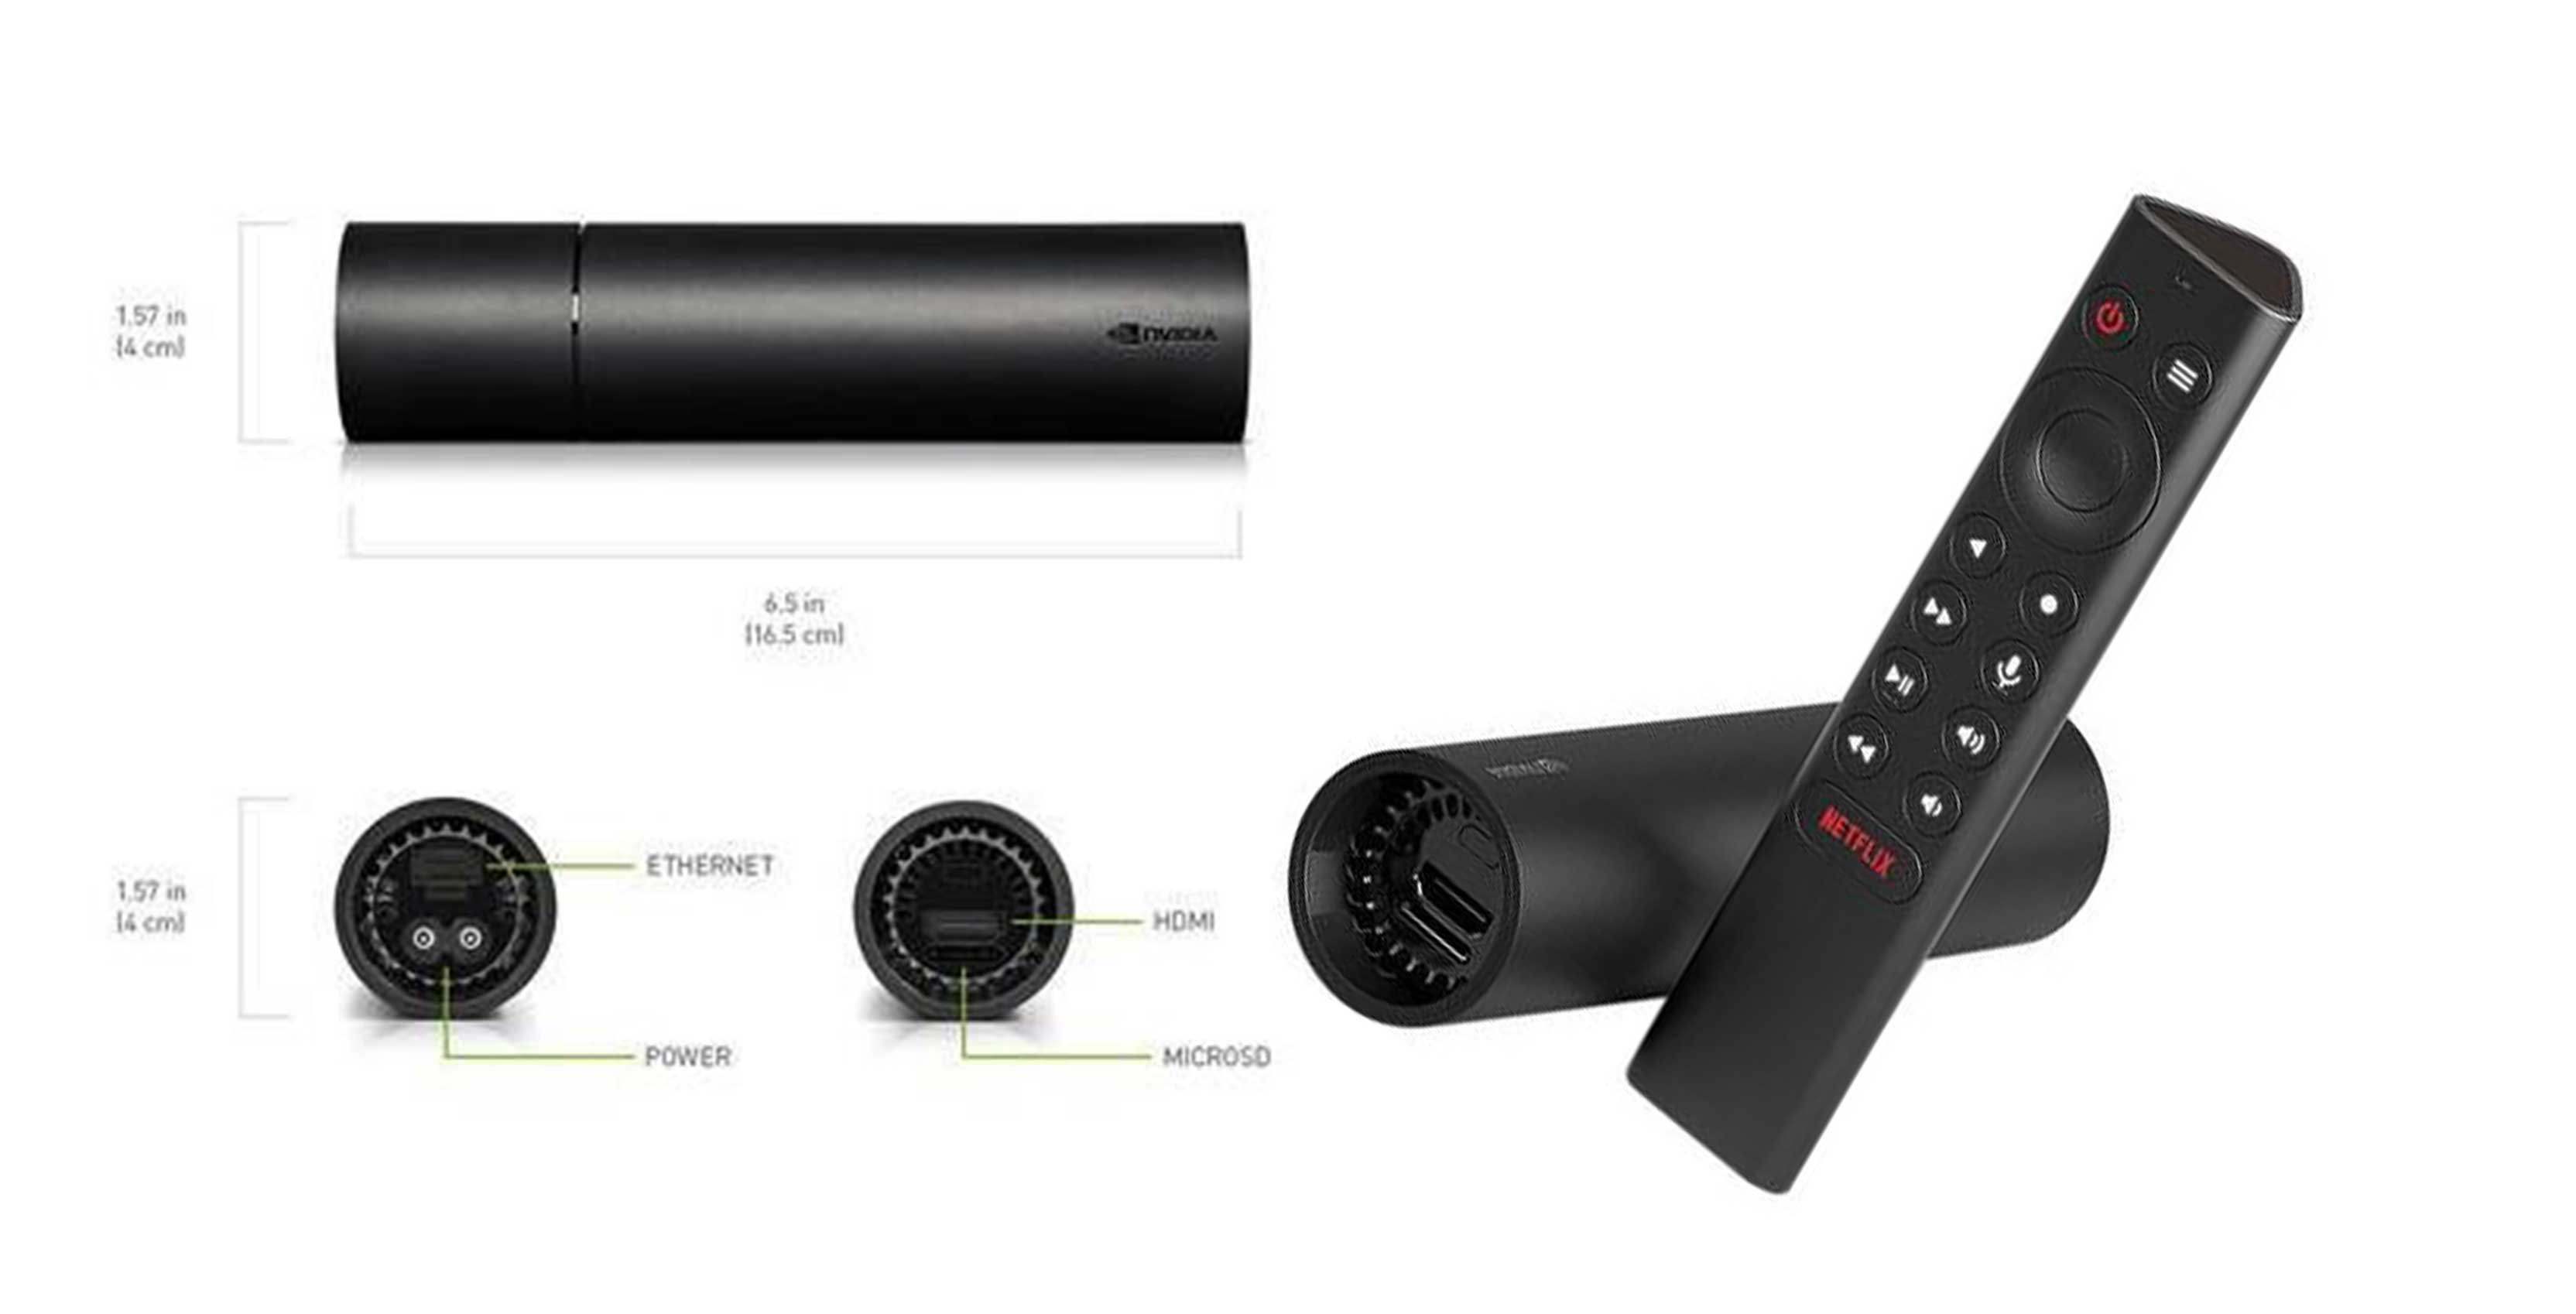 New cheaper Nvidia Android TV Stick with tubular design leaks